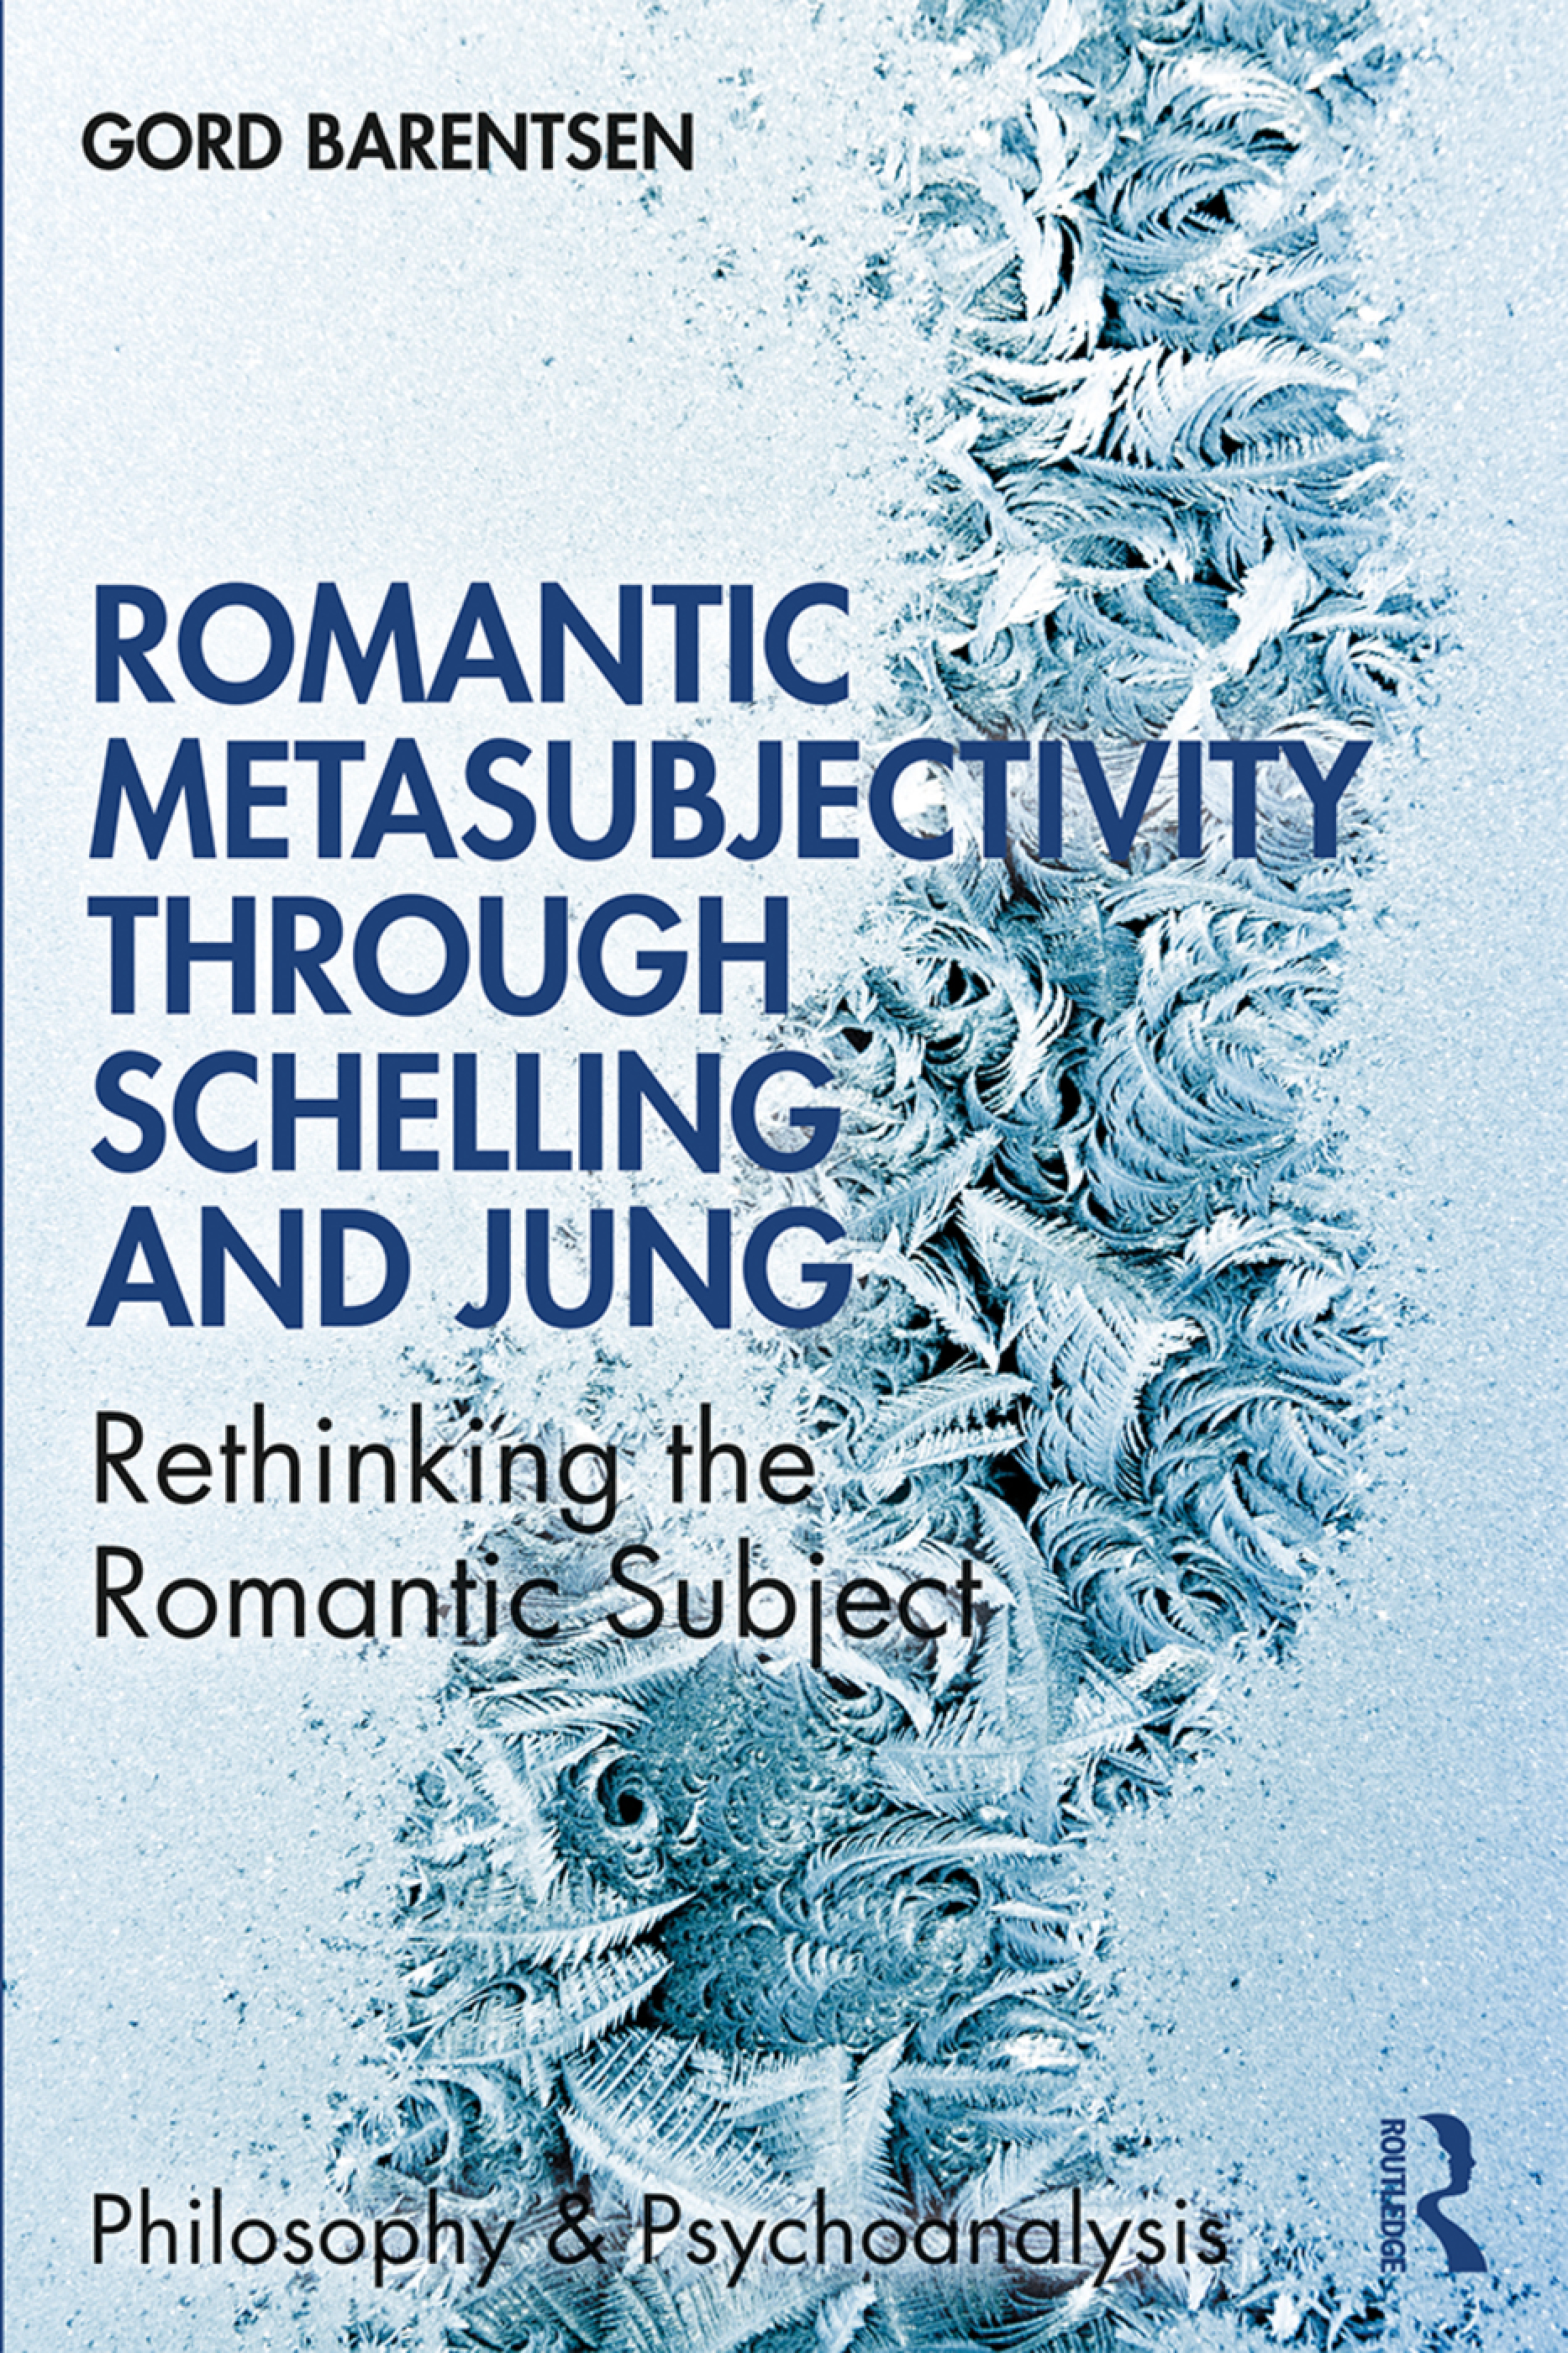 Romantic Metasubjectivity Through Schelling and Jung: Rethinking the Romantic Subject book cover